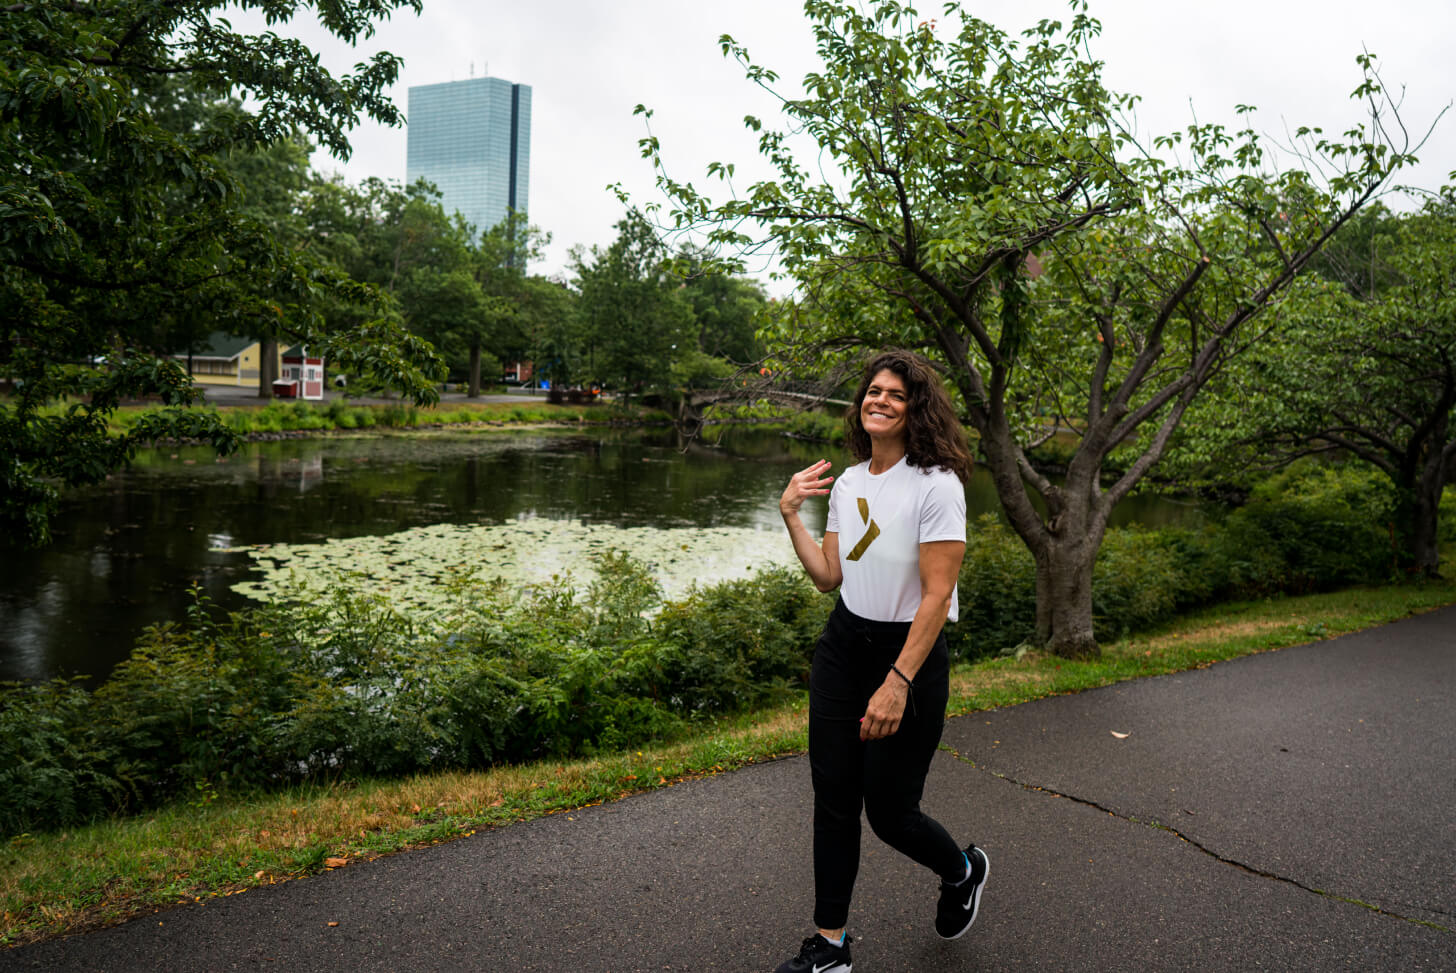 iFIT Guide Dr. Eva Selhub coaches a walking workout